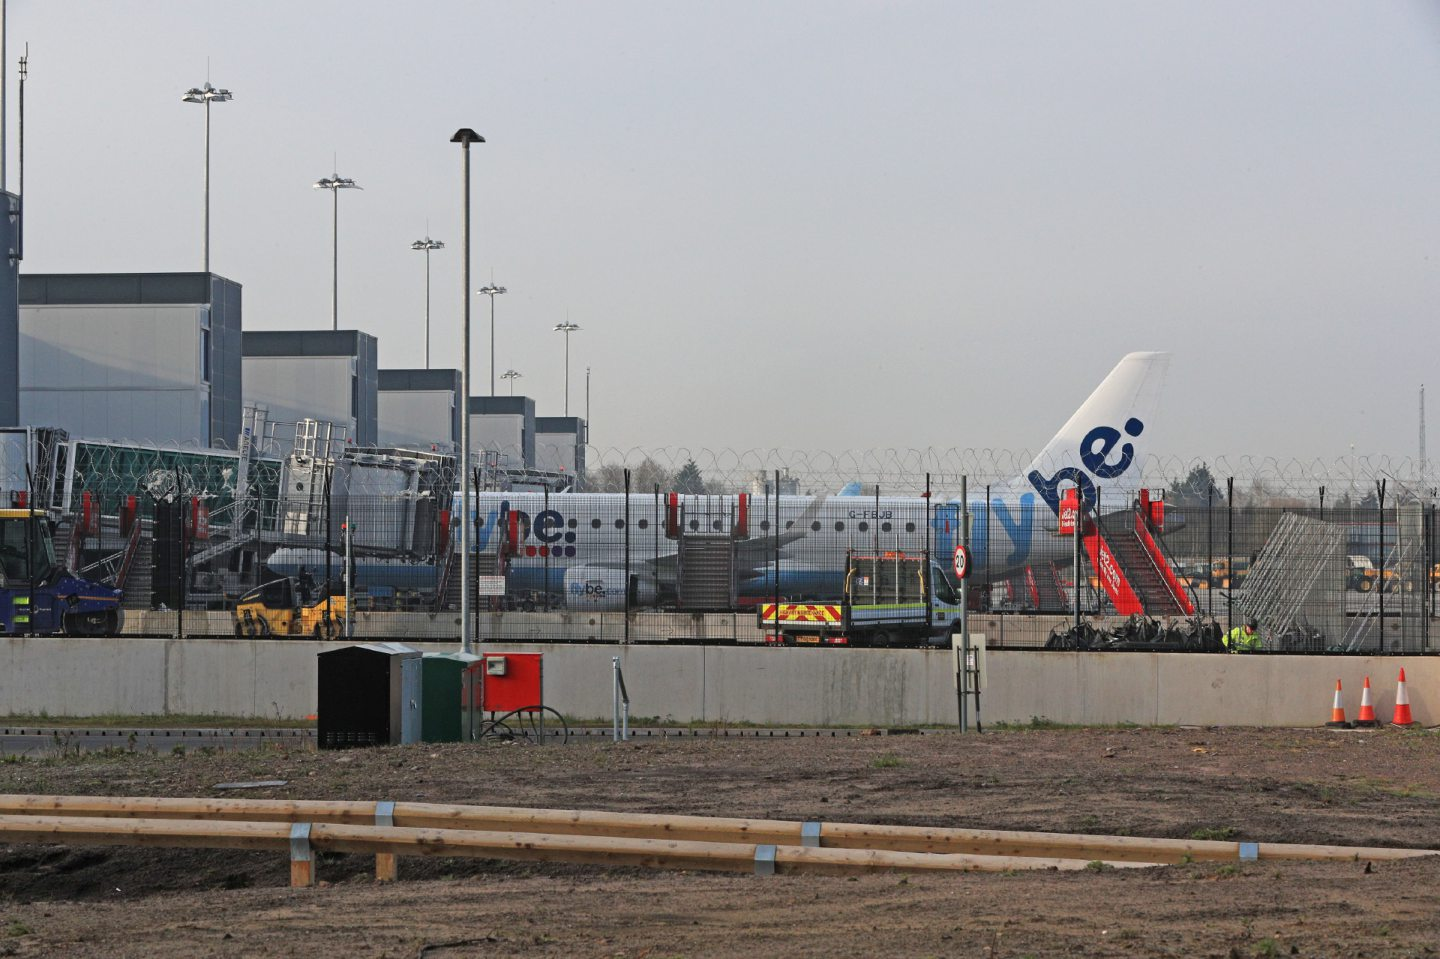 A Flybe plane parked up at Manchester Airport, as Flybe, Europe's biggest regional airline, has collapsed into administration. PA Photo. Picture date: Thursday March 5, 2020. See PA story AIR FlyBe. Photo credit should read: Peter Byrne/PA Wire